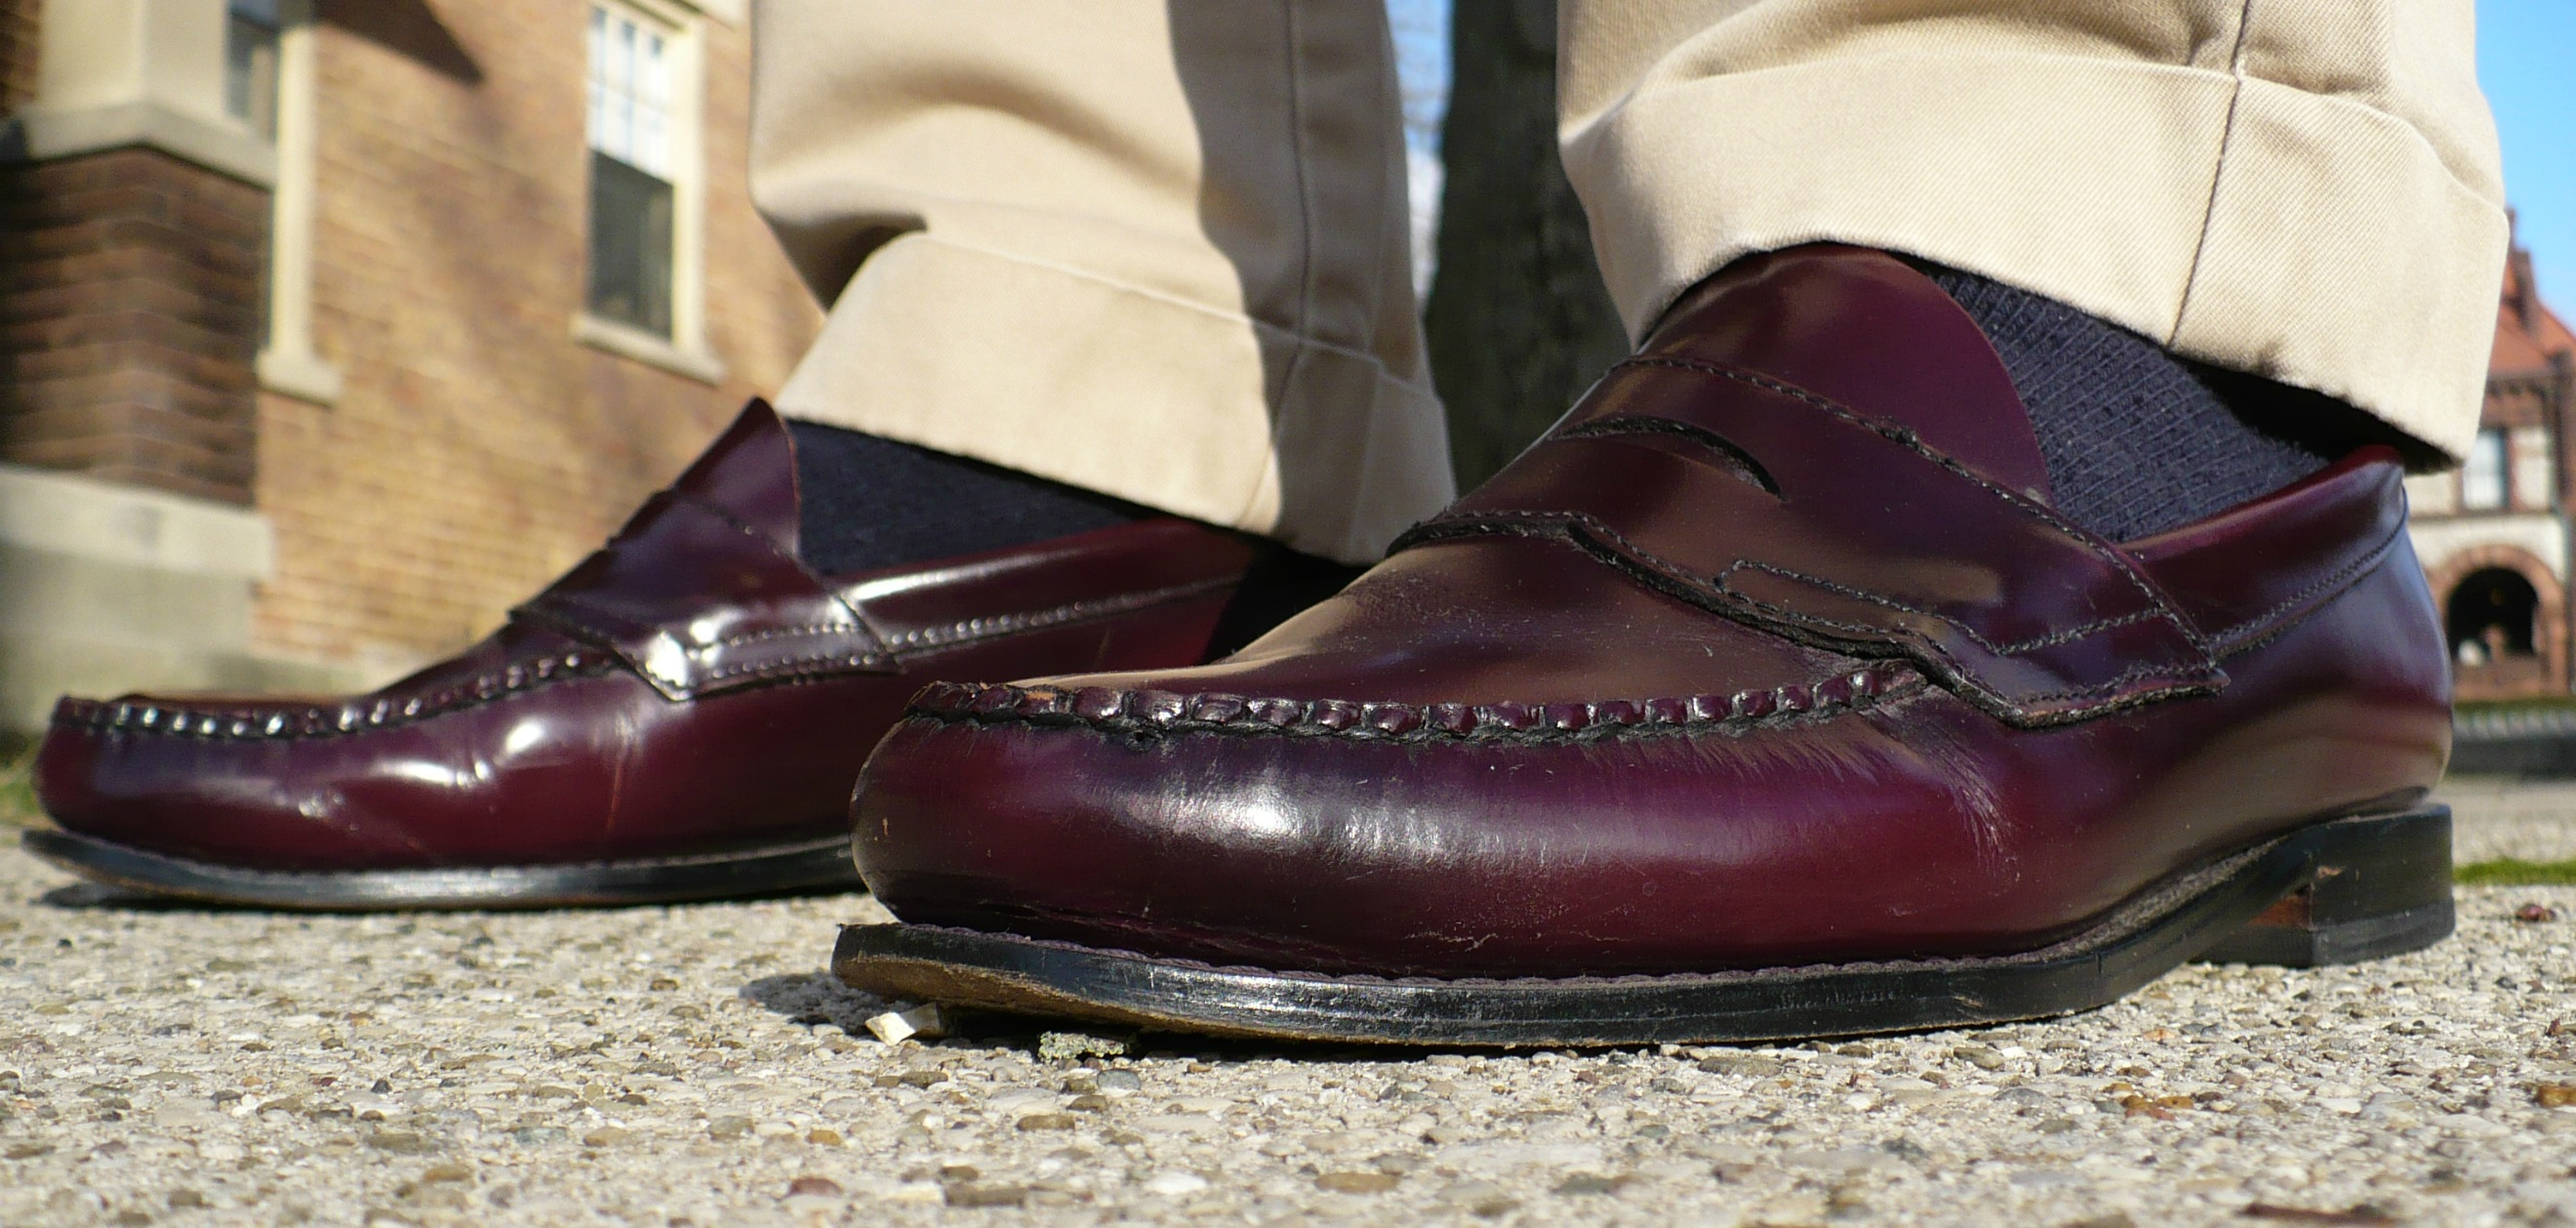 27e8e070fe7 Burgundy Bass Weejun Burgundy Bass Weejun Penny Loafer